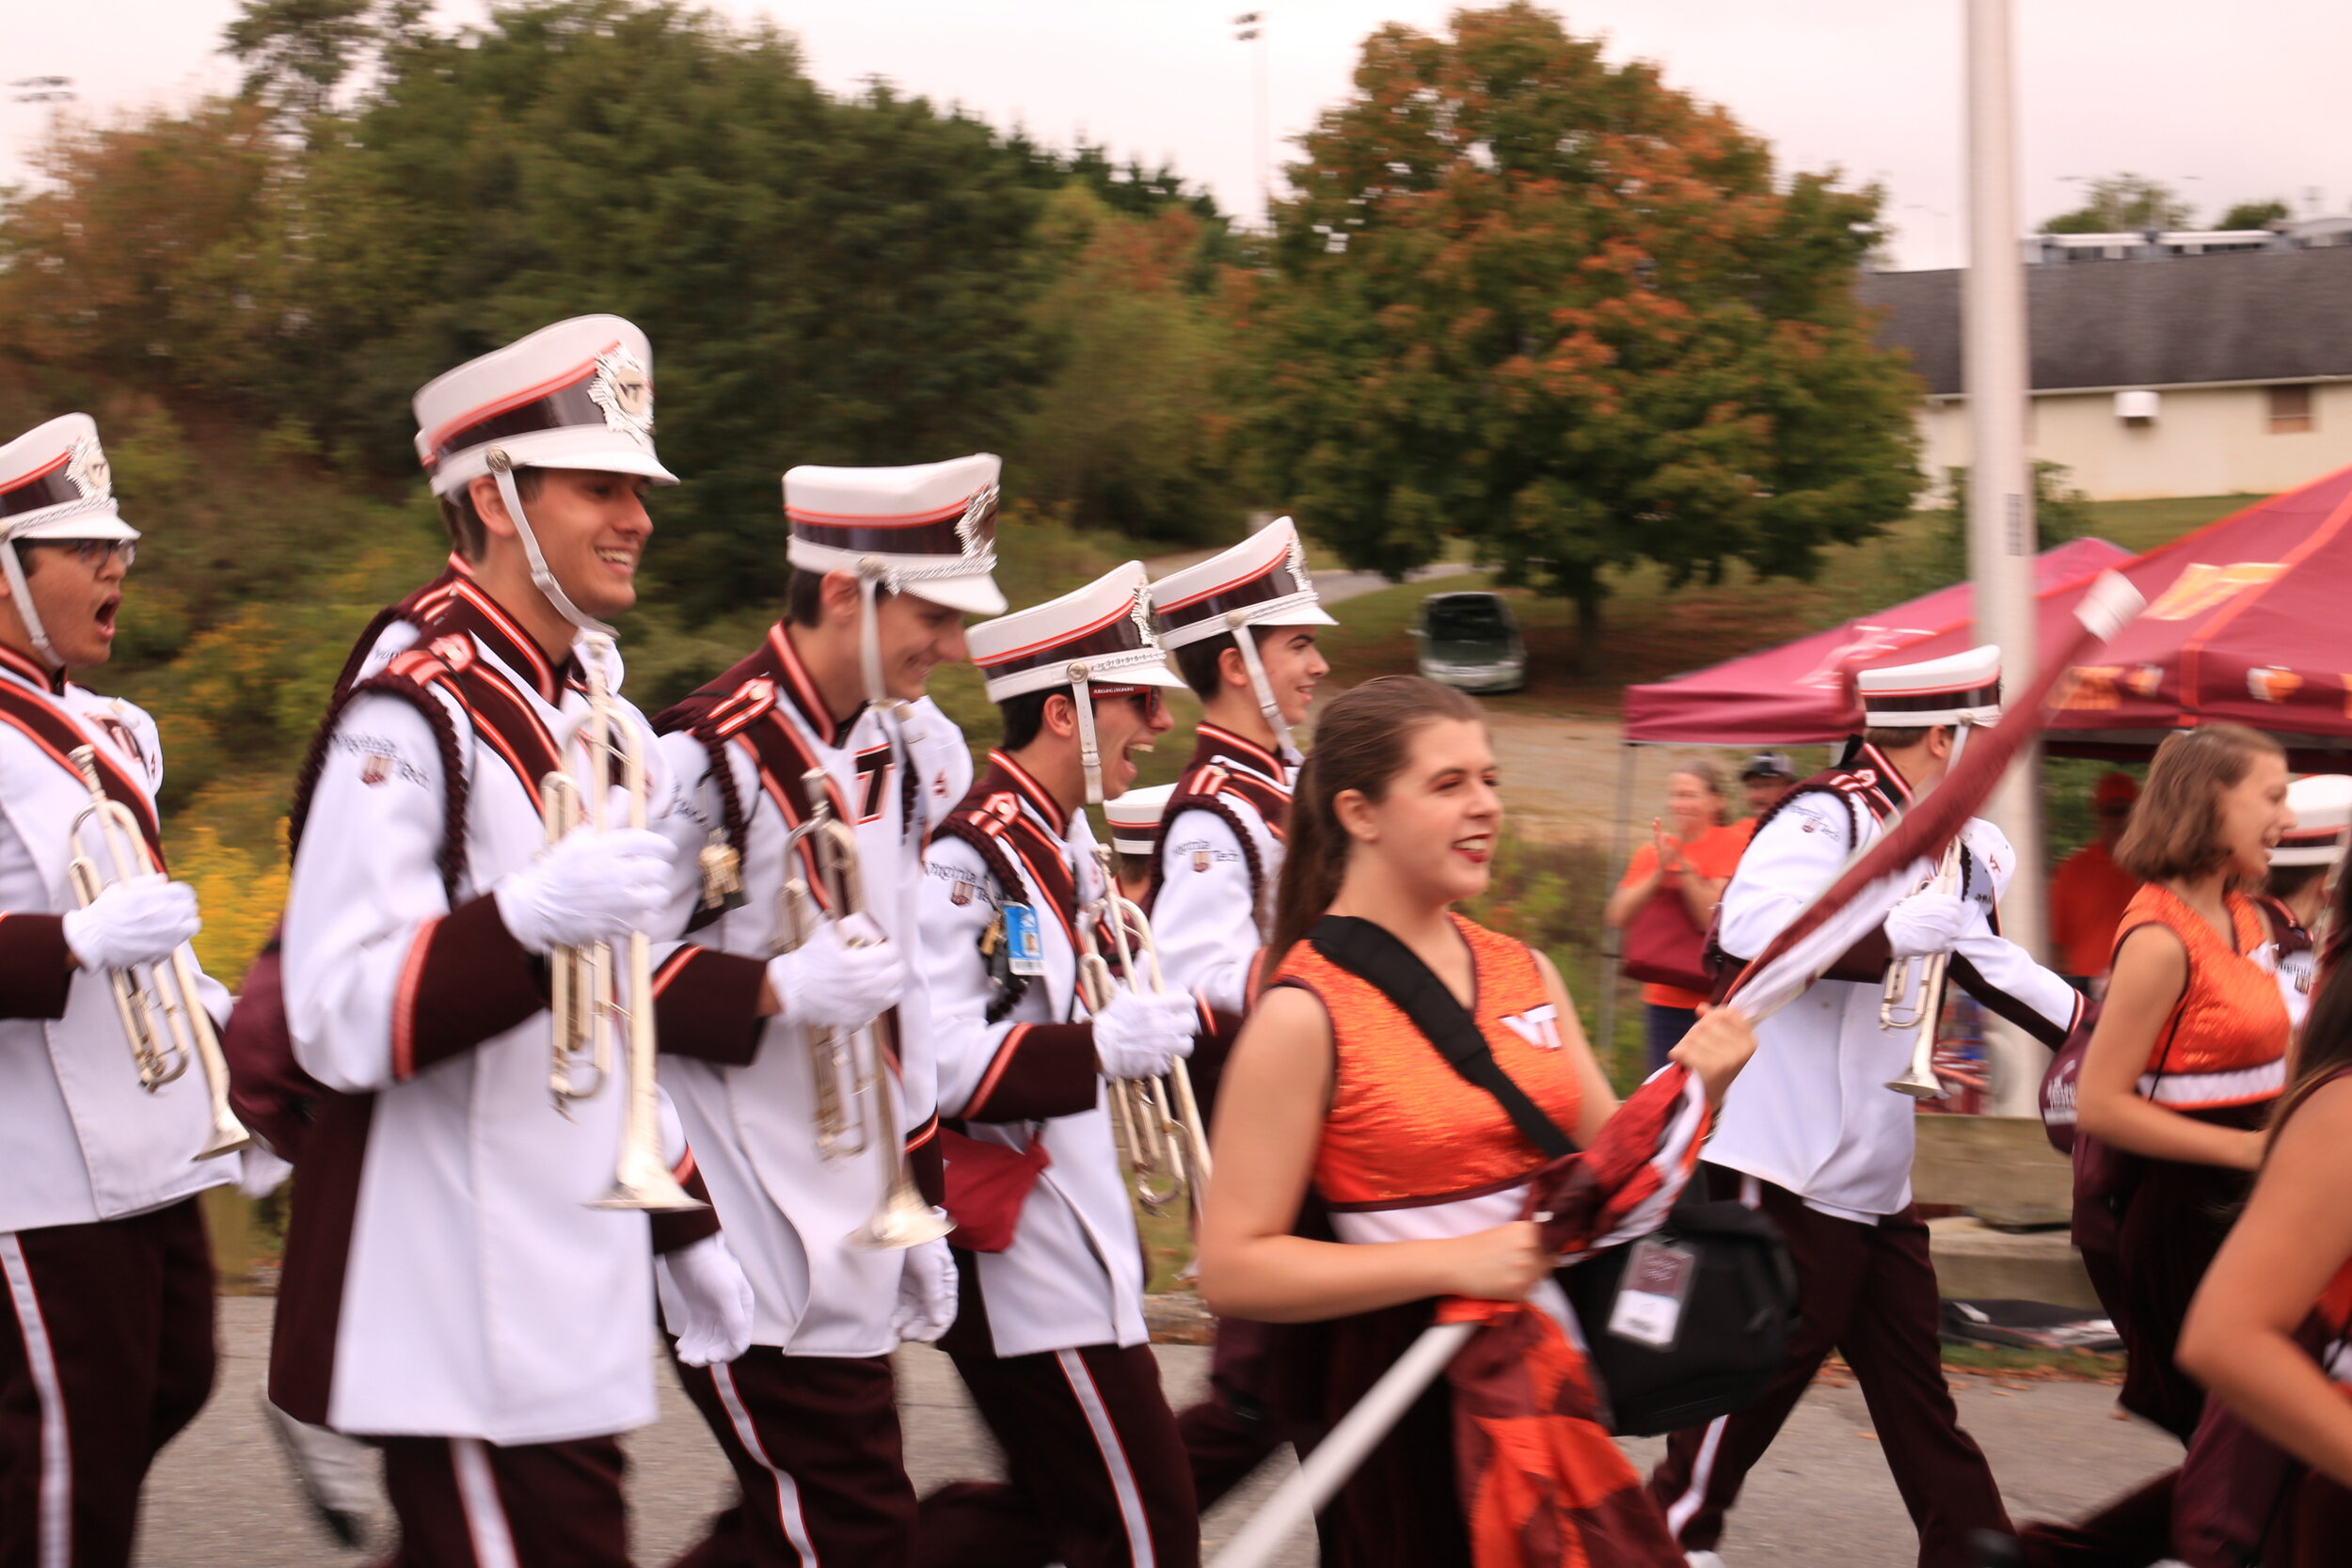 It may be a bit of a walk, but everyone has fun during the March to Victory down to Lane Stadium; Source: Ashley Deans